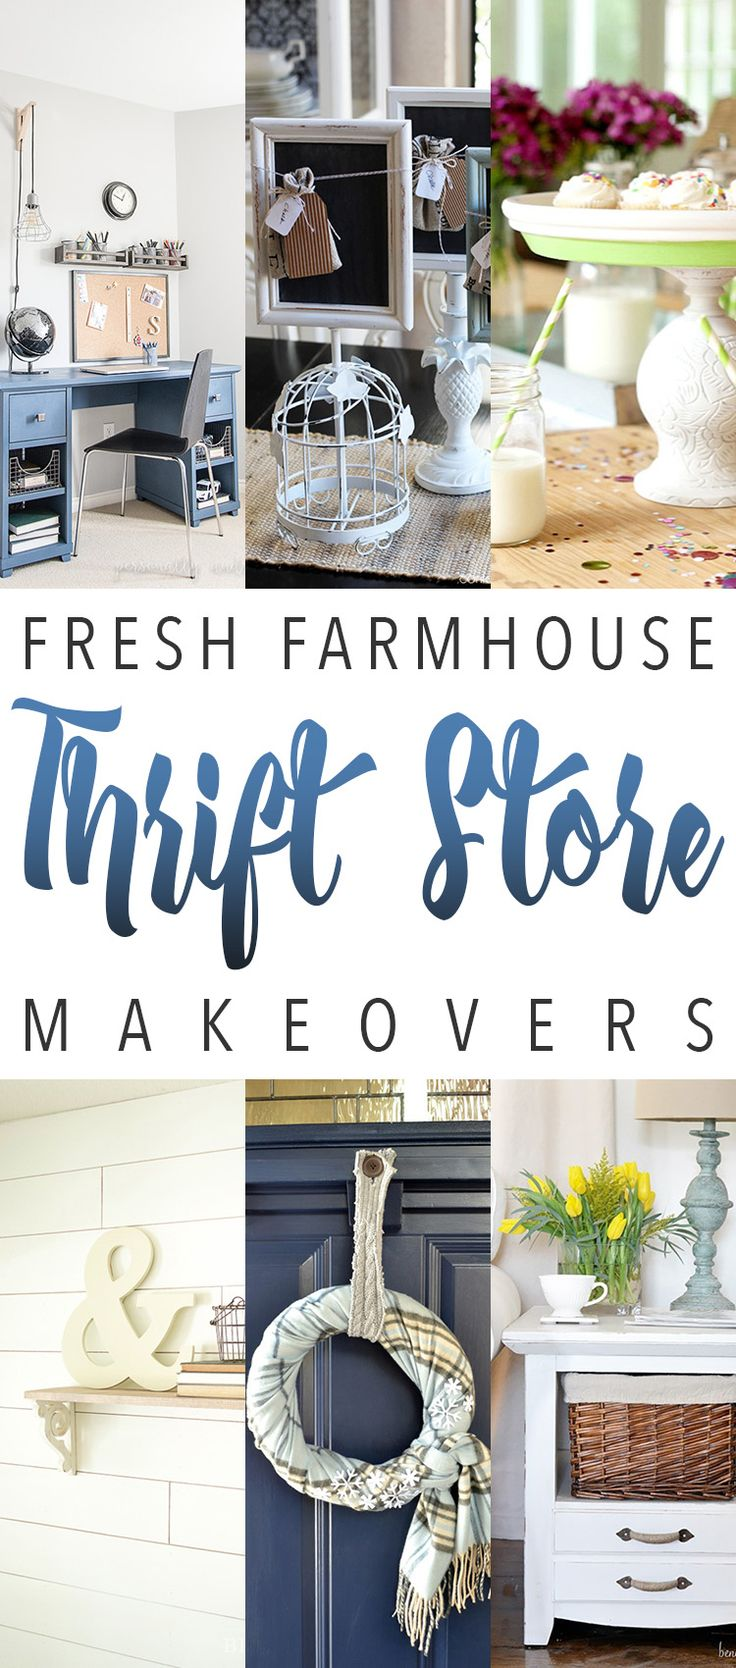 Fresh Farmhouse Thrift Store Makeovers | The Cottage Market | Bloglovin'